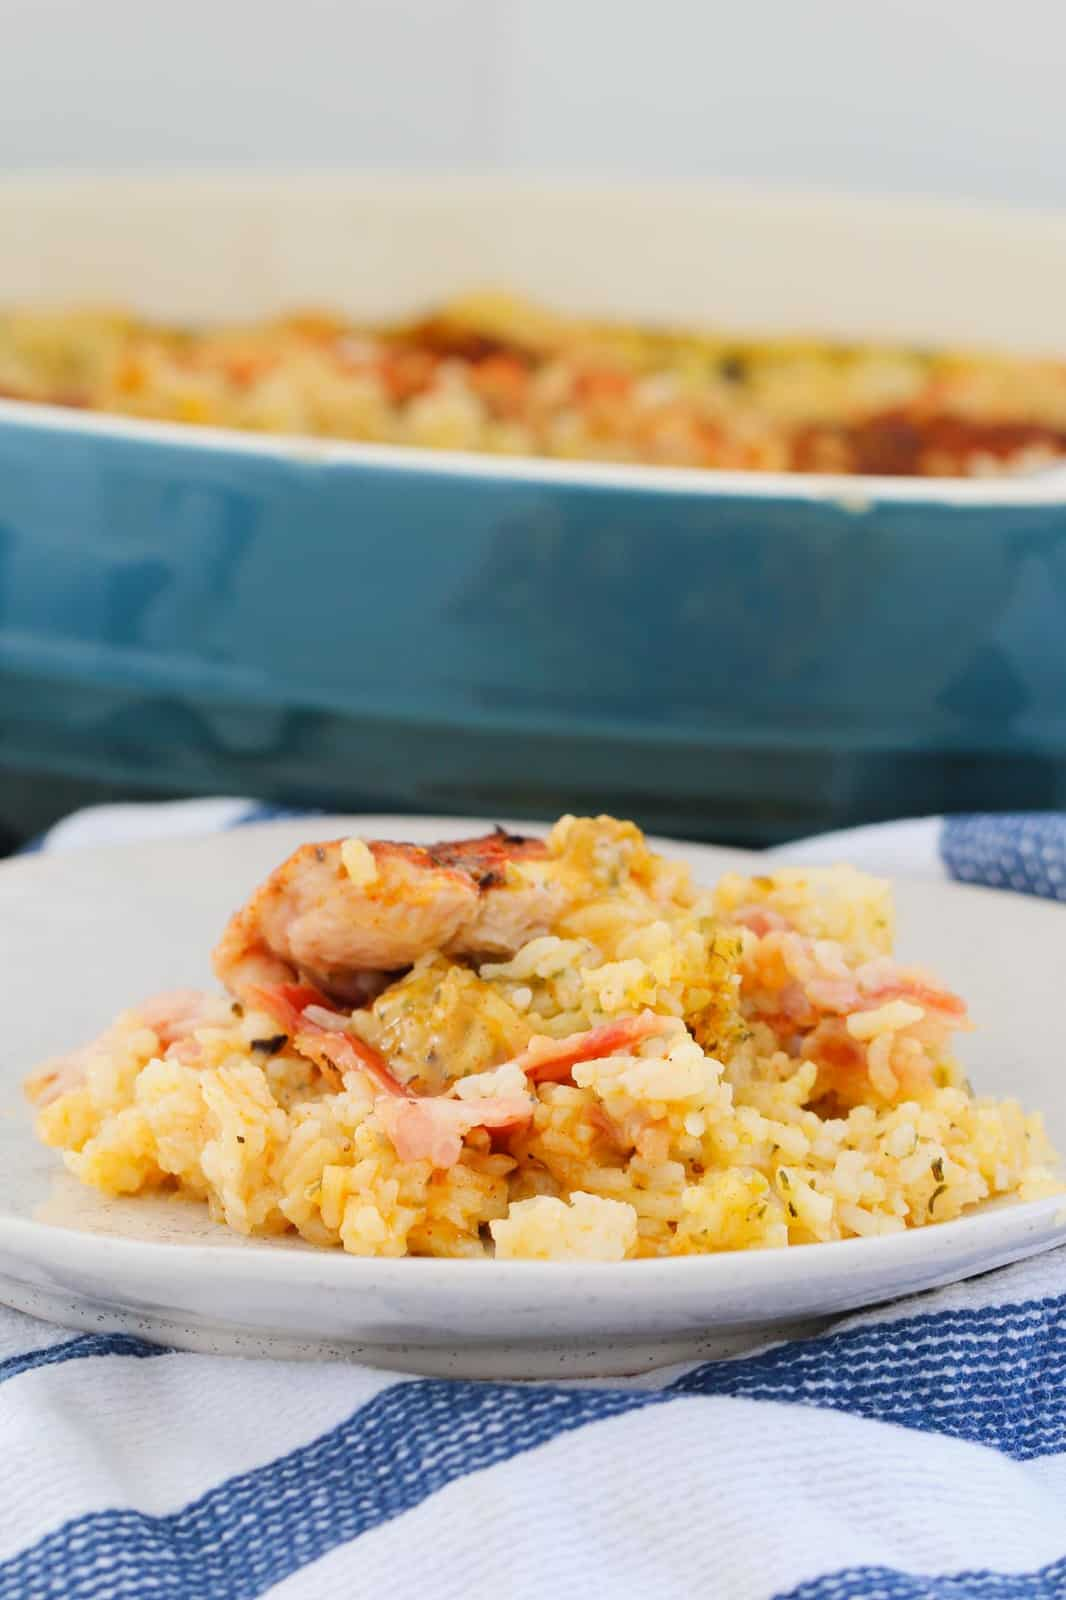 A serve of creamy chicken, bacon and rice casserole on a tea towel in front of a baking dish